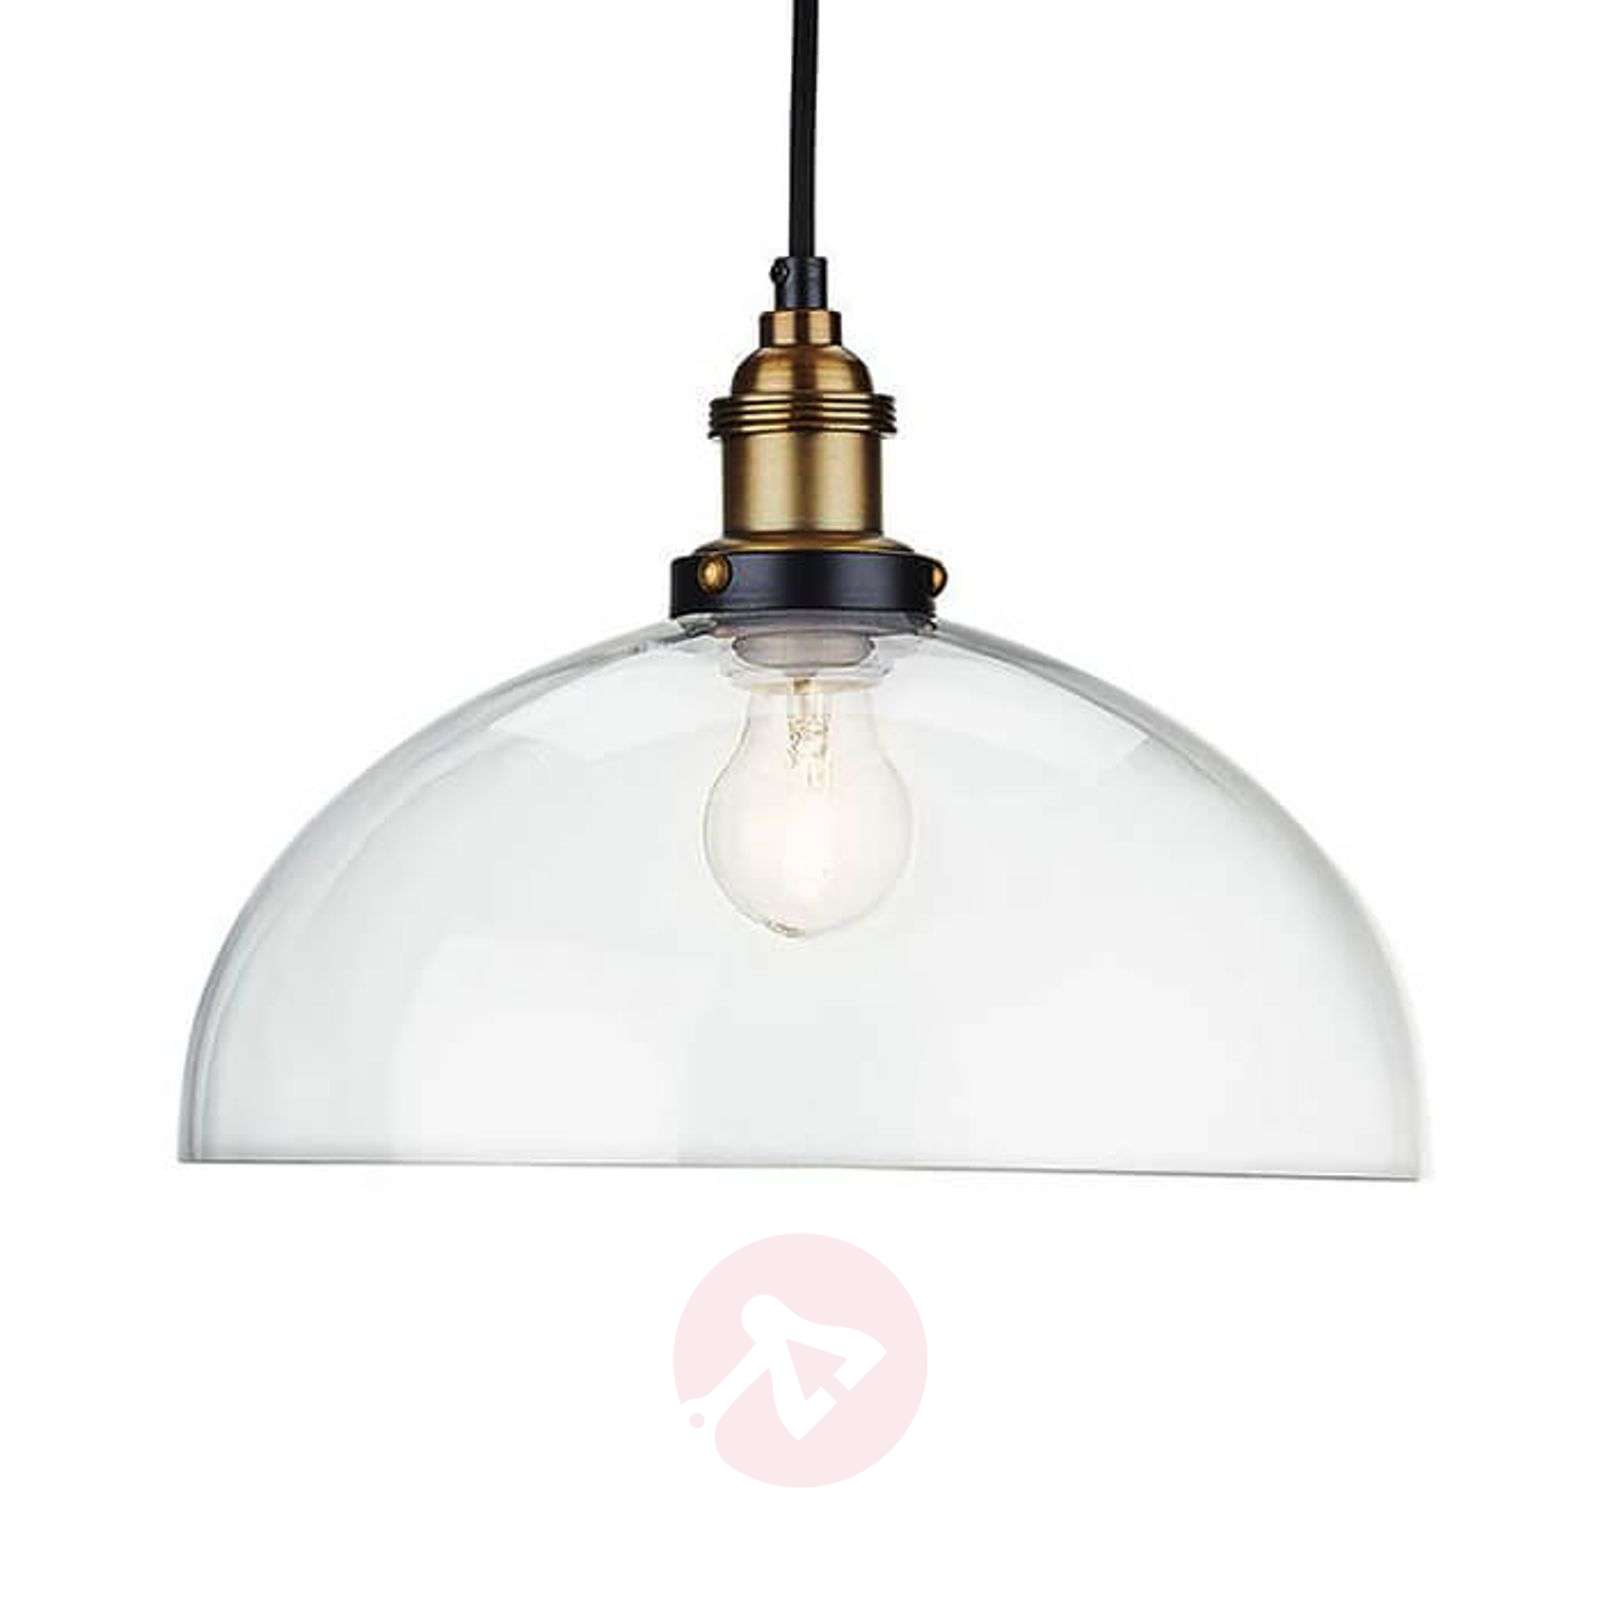 tarbes light vintage pendant lights black en ie in bulb